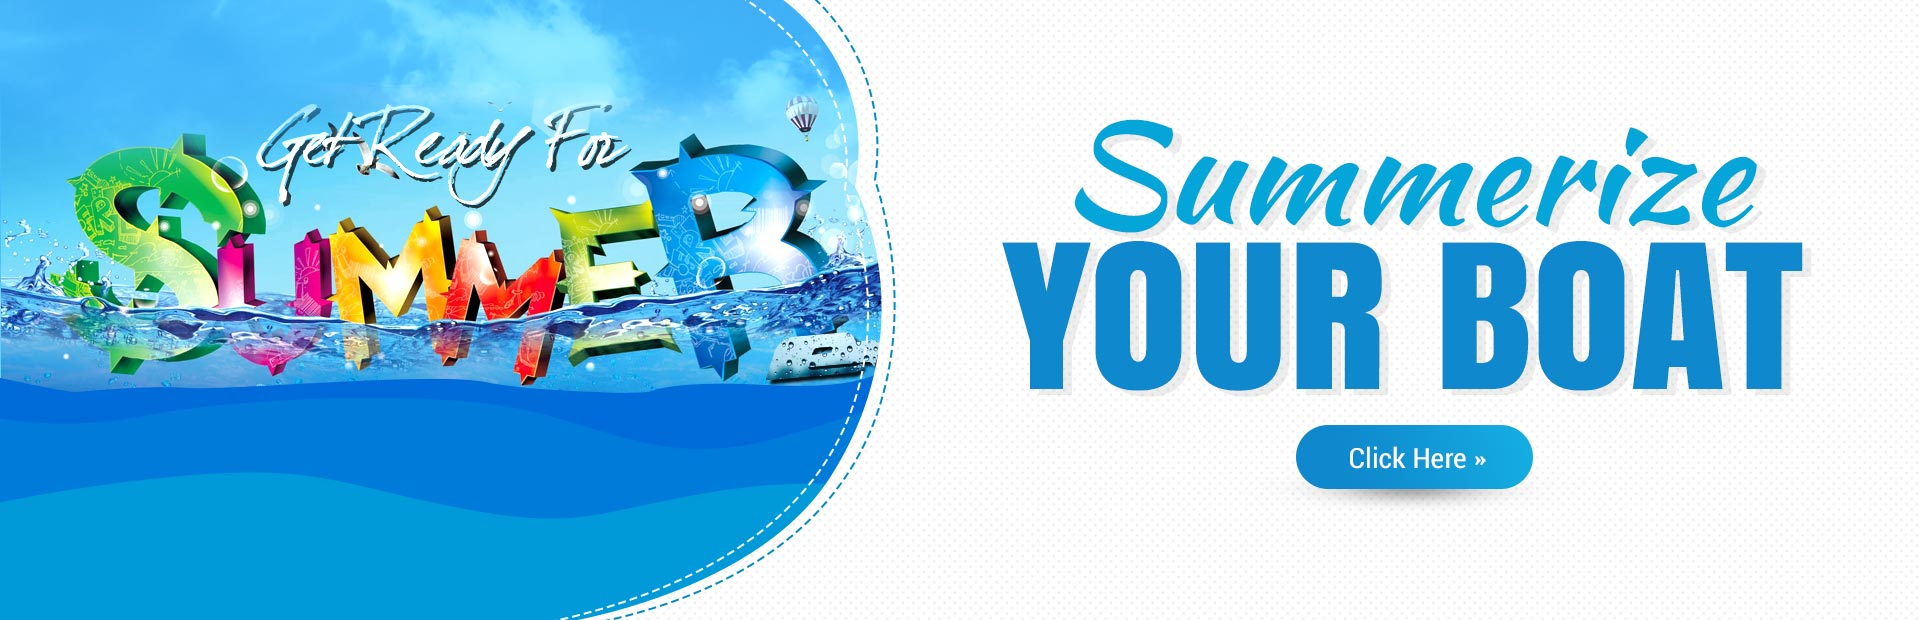 Summerize Your Boat: Contact us for details.